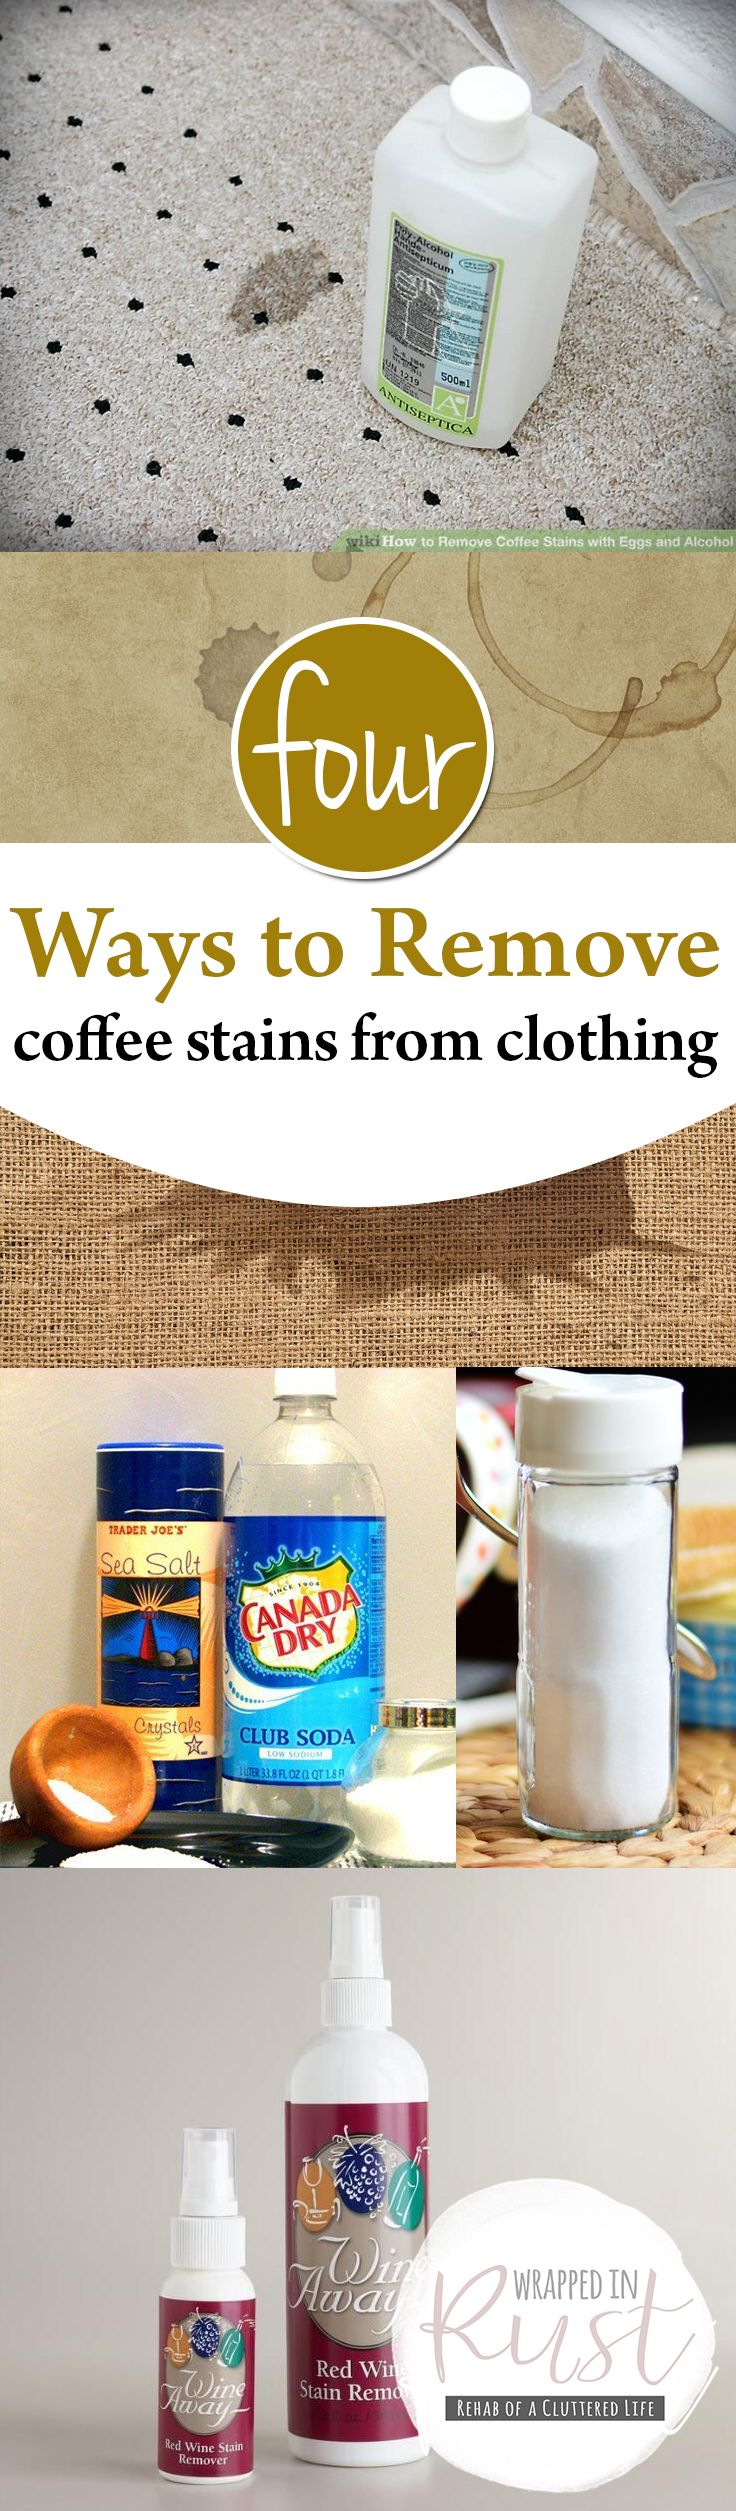 Four Ways to Remove Coffee Stains from Clothing| Remove Coffee Stains, Clothing, Removing Stains from Clothing, Stain Hacks, Laundry Hacks, Popular Pin #Clothing #ClothingHacks